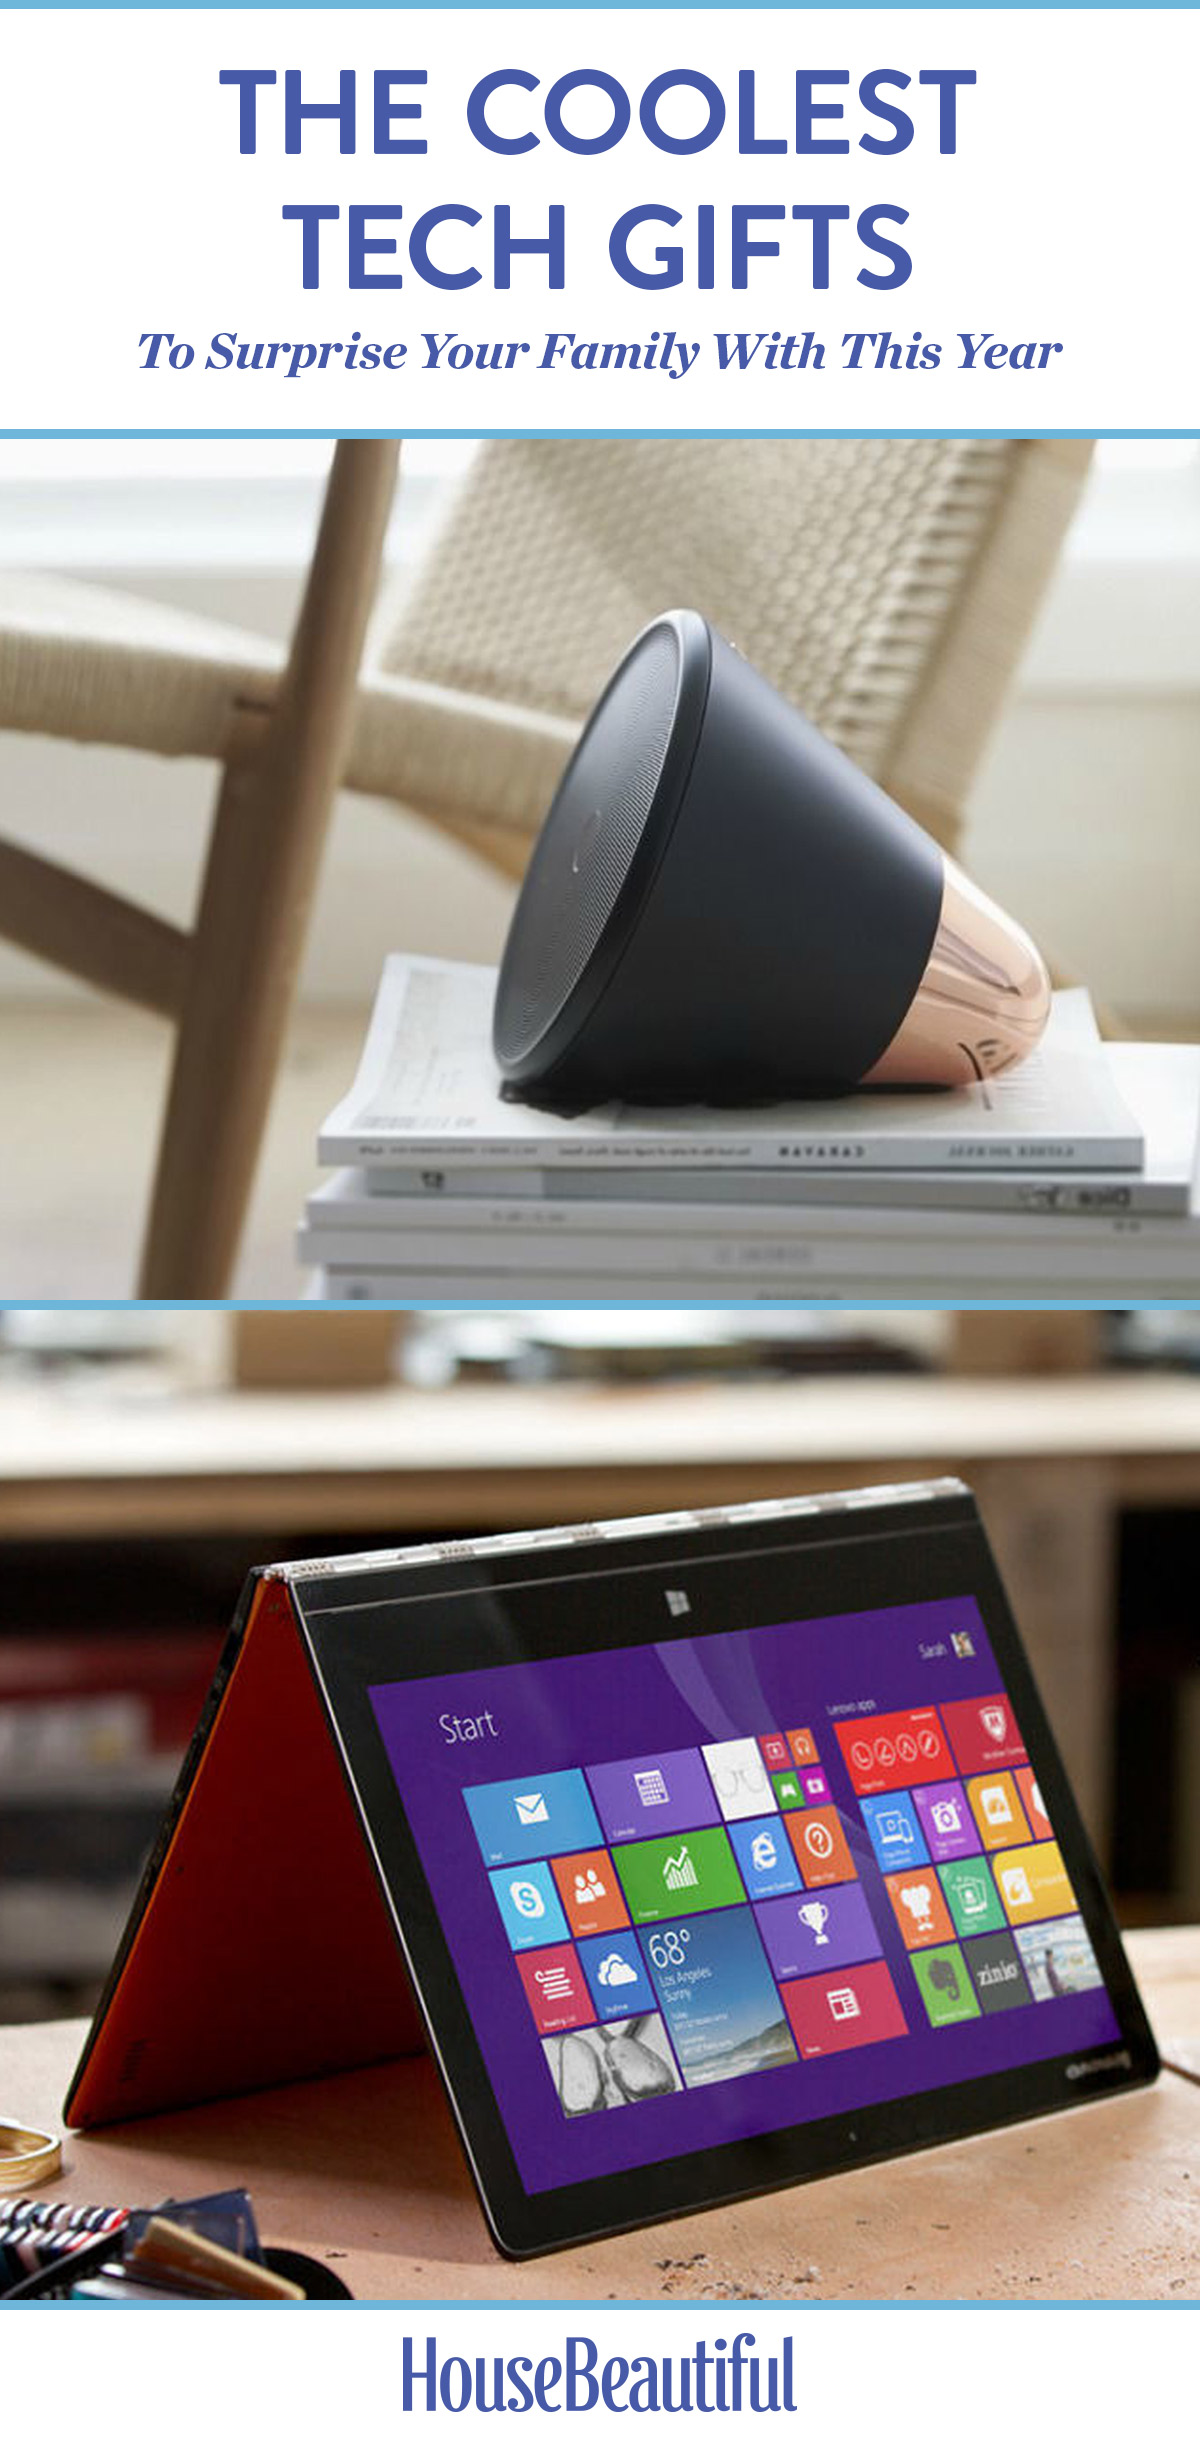 20 Cool Tech Gifts for 2016 - Home and Design Technology ...